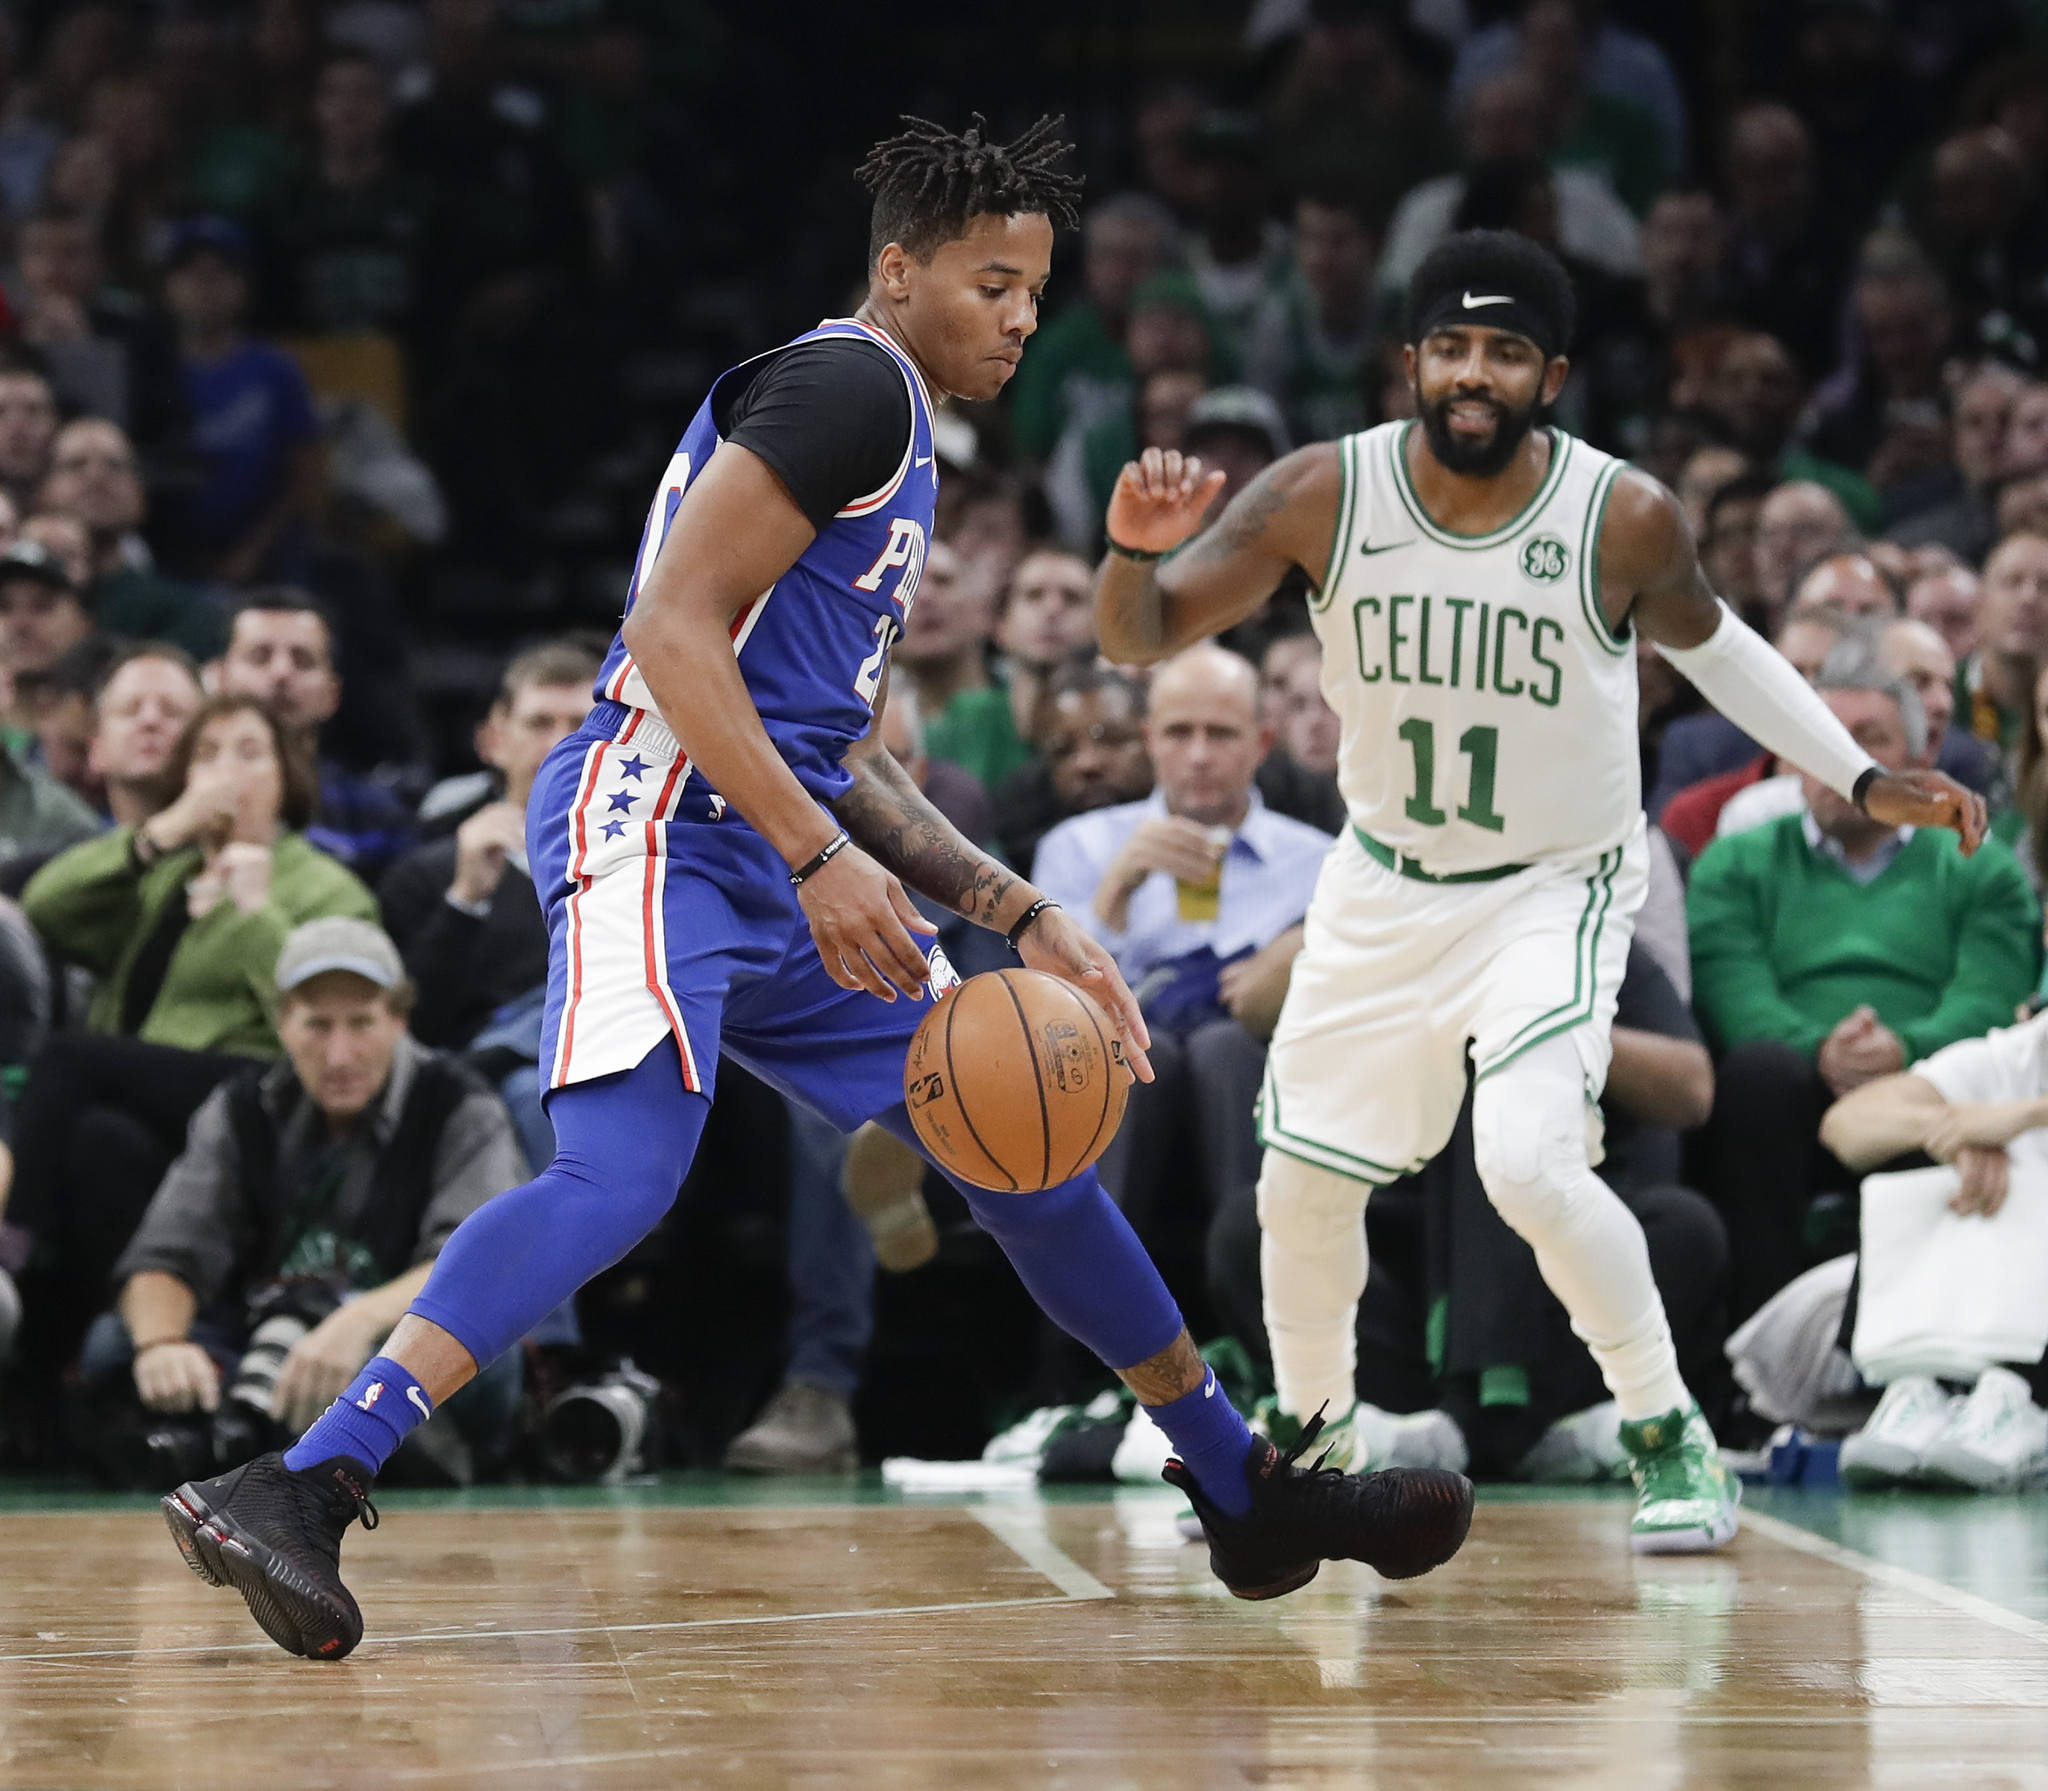 Sixers guard Markelle Fultz steals the basketball past Celtics guard Kyrie Irving.